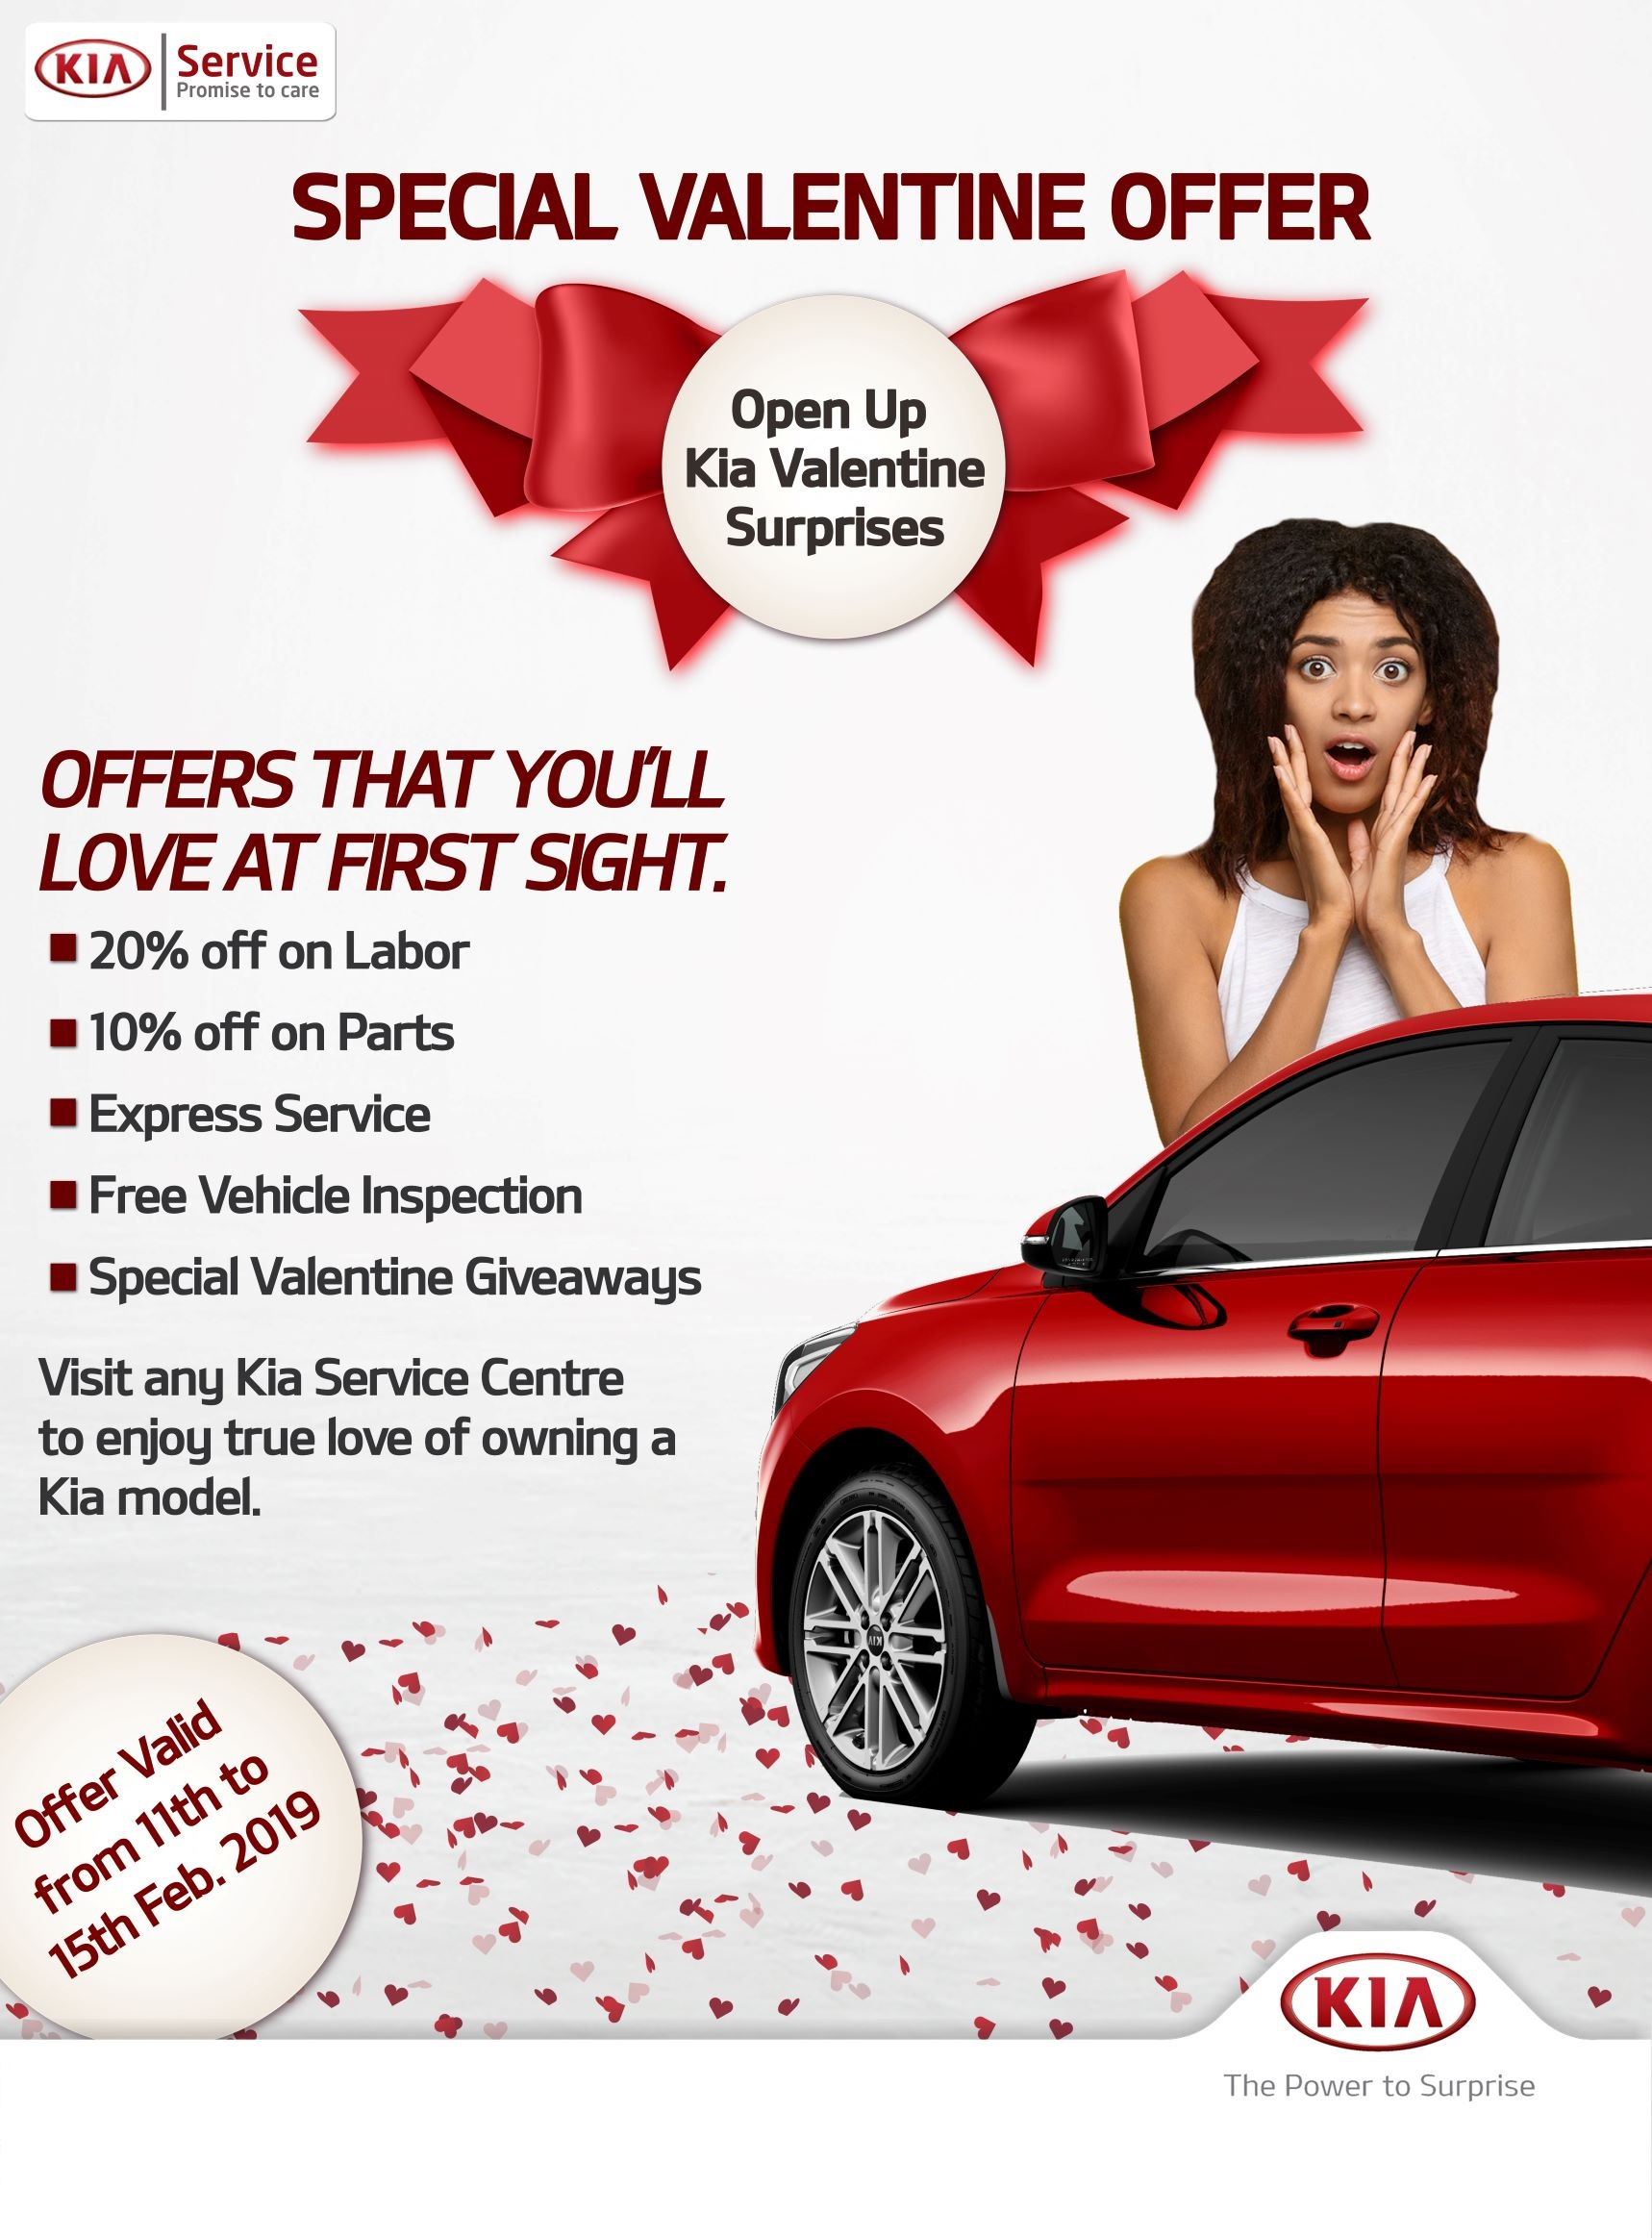 Kia Special Valentine Promo. Offers that you'll love at first sight - Brand Spur